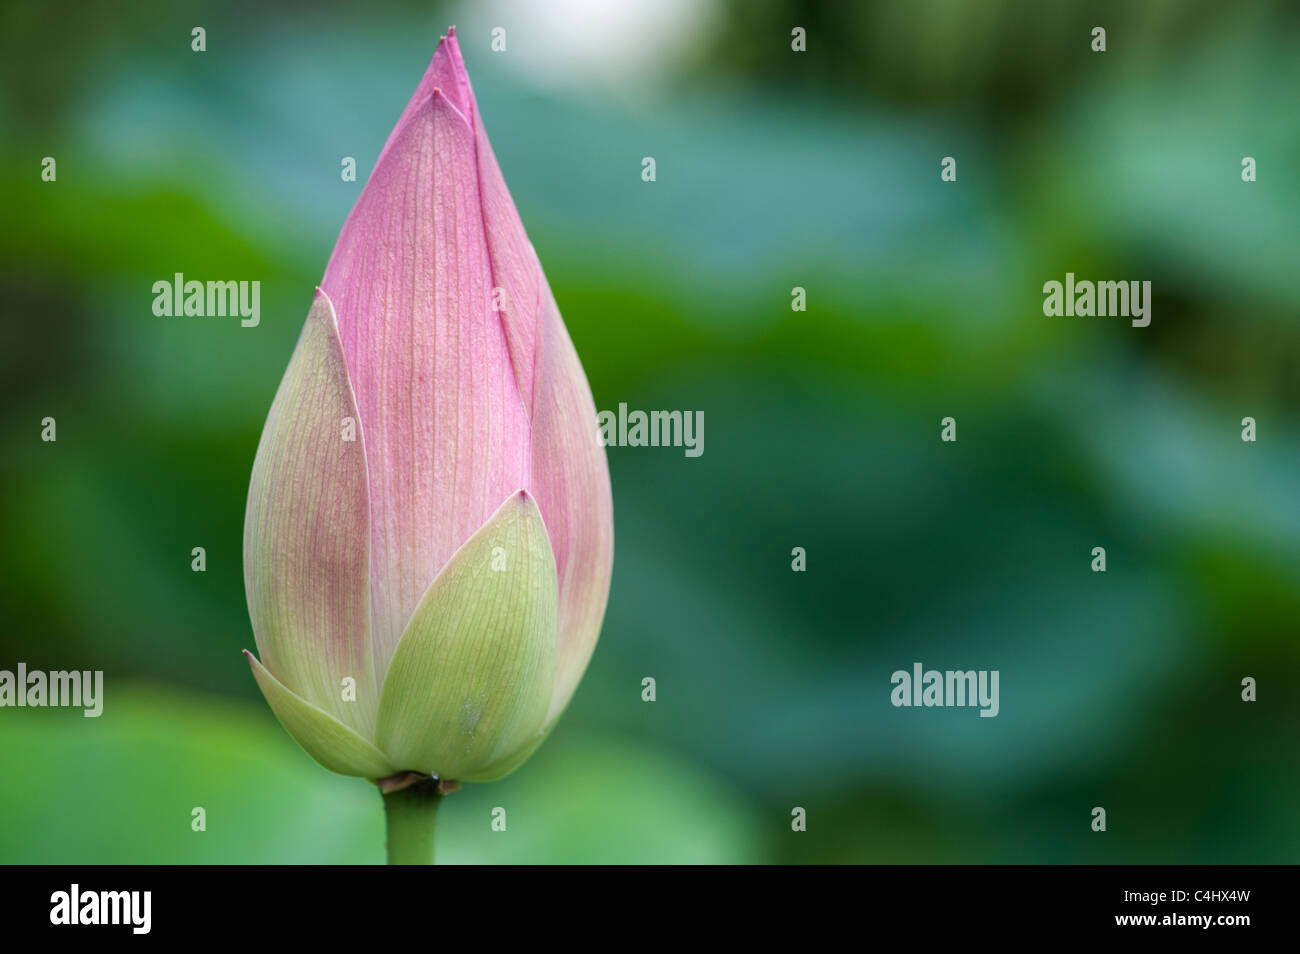 Lotus flower stock photos lotus flower stock images alamy lotus flower in bud stock image izmirmasajfo